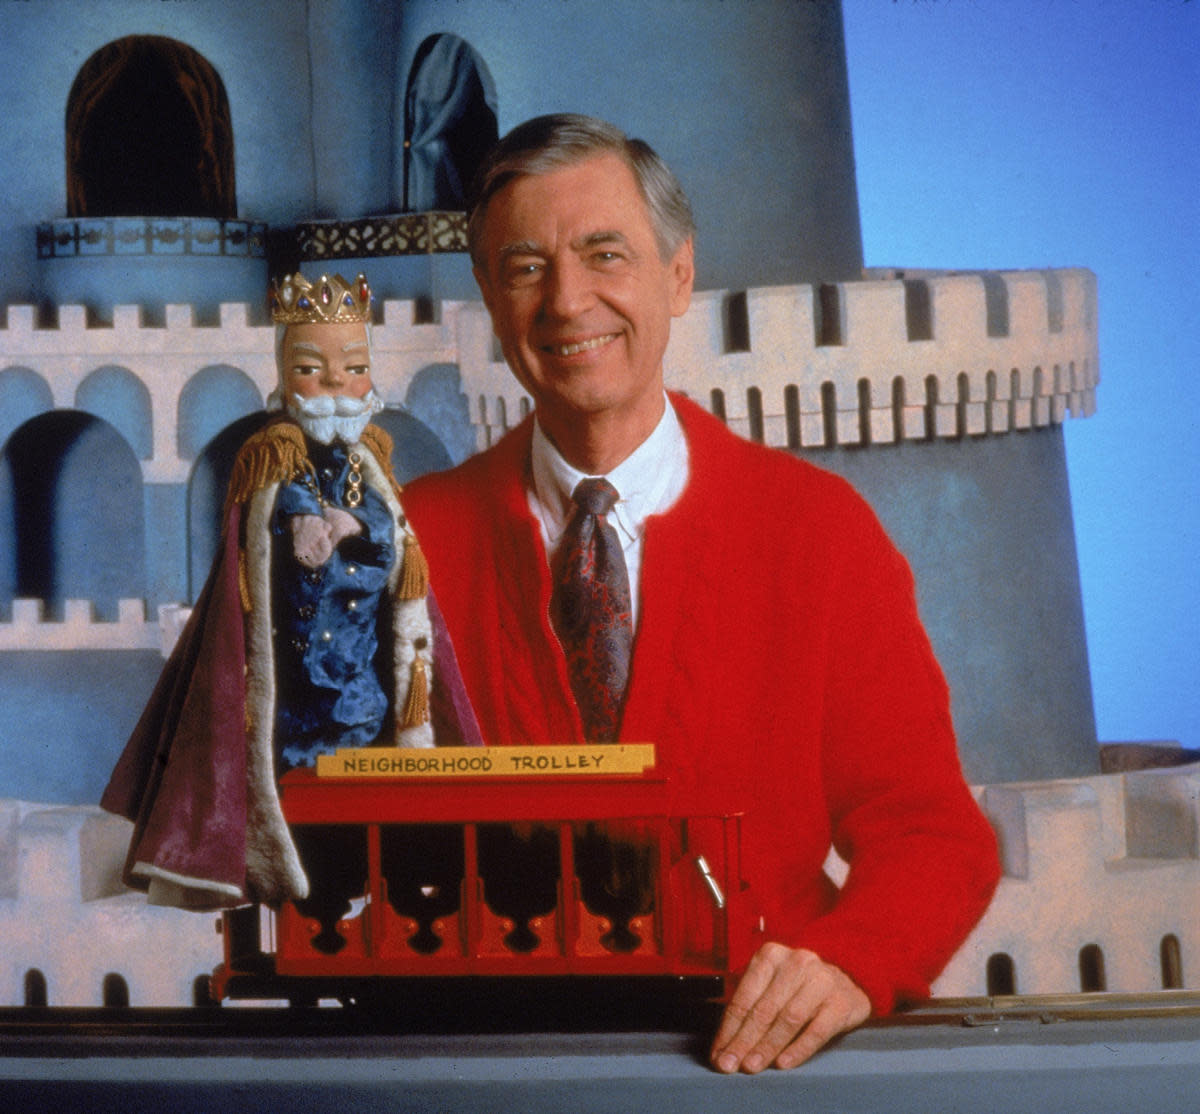 Fred Rogers on the set of his television show 'Mister Rogers' Neighborhood,' circa 1980s. (Credit: Fotos International/Getty Images)